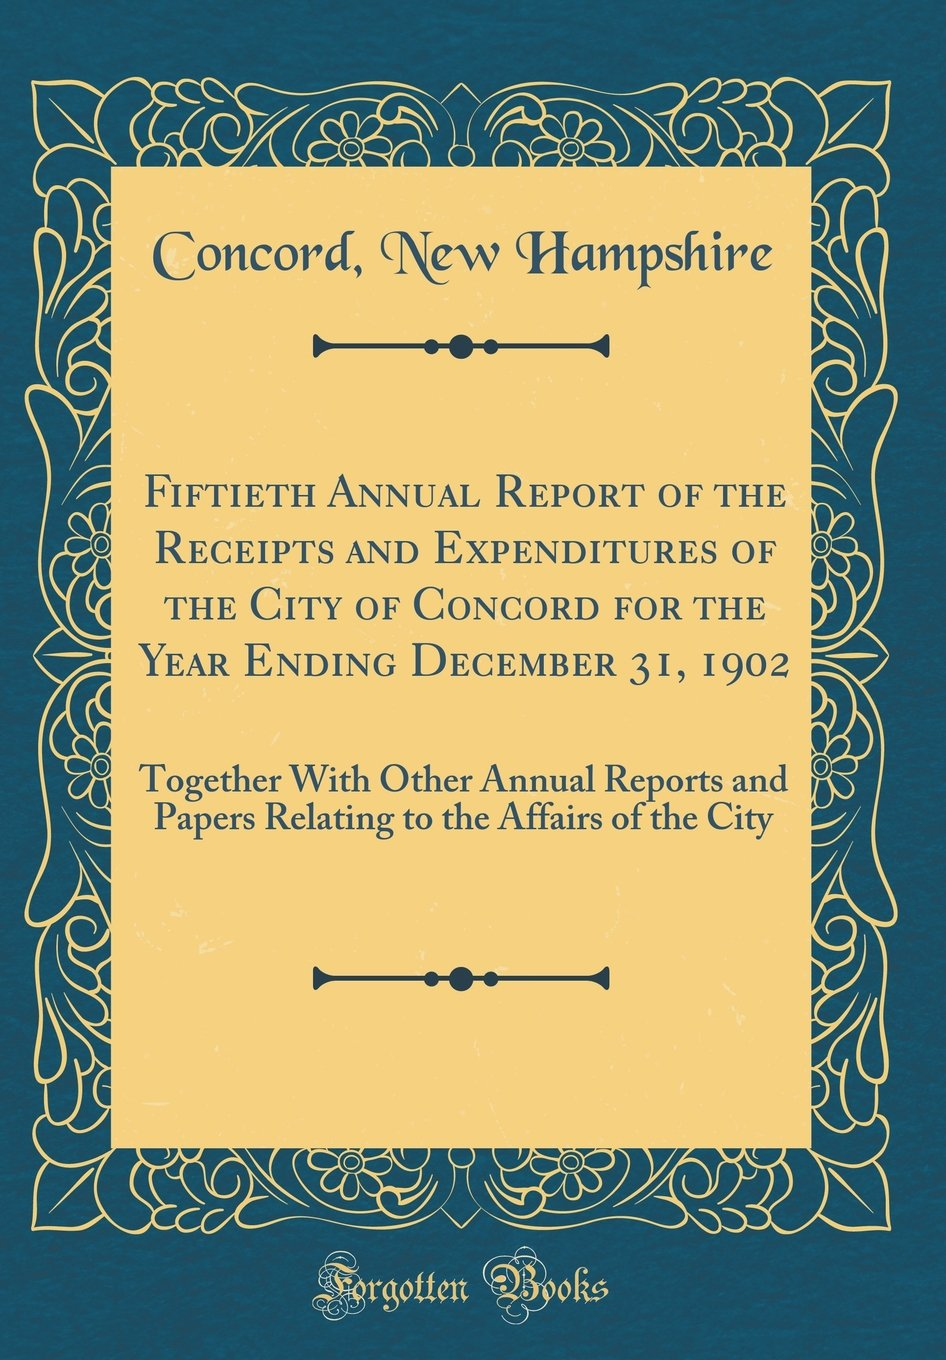 Fiftieth Annual Report of the Receipts and Expenditures of the City of Concord for the Year Ending December 31, 1902: Together With Other Annual to the Affairs of the City (Classic Reprint) PDF